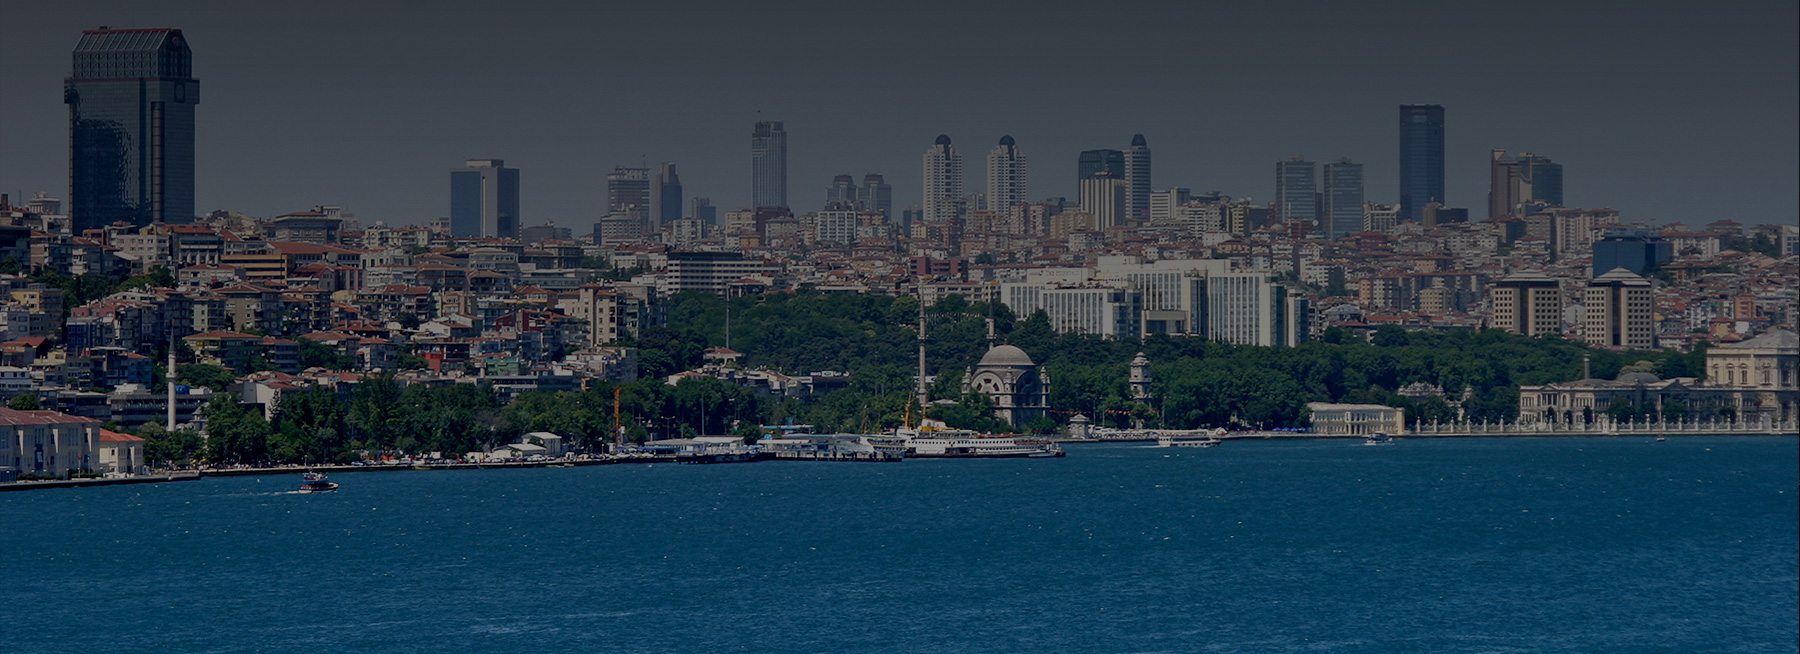 Real Estate in Istanbul Turkey - Reha Medin Global